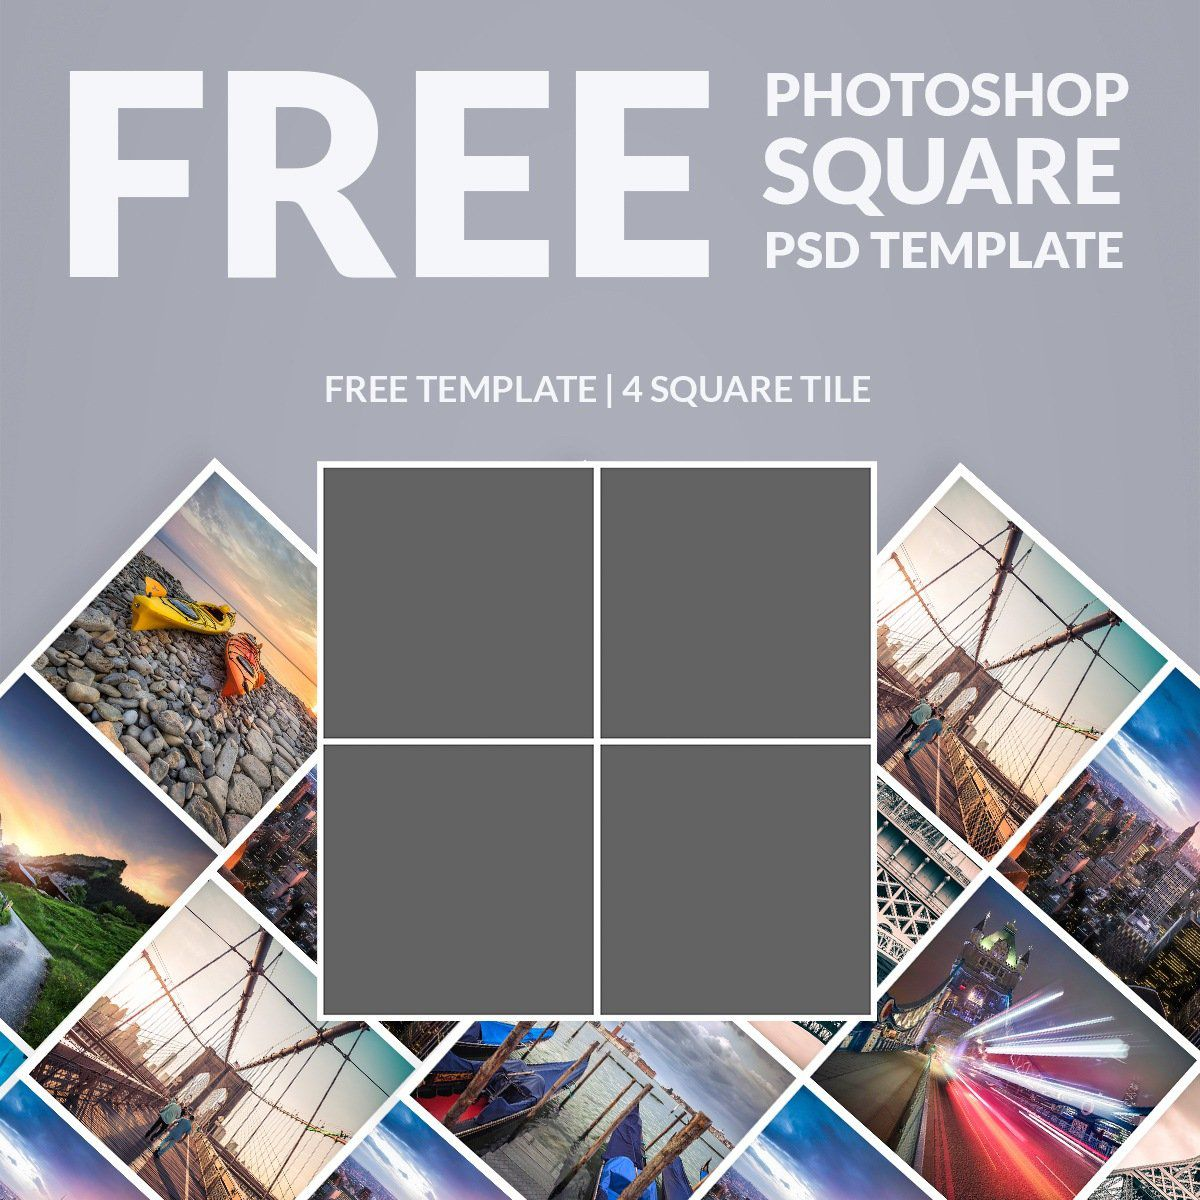 003 Archaicawful Free Photo Collage Template Download Inspiration  Picture Psd PowerpointFull